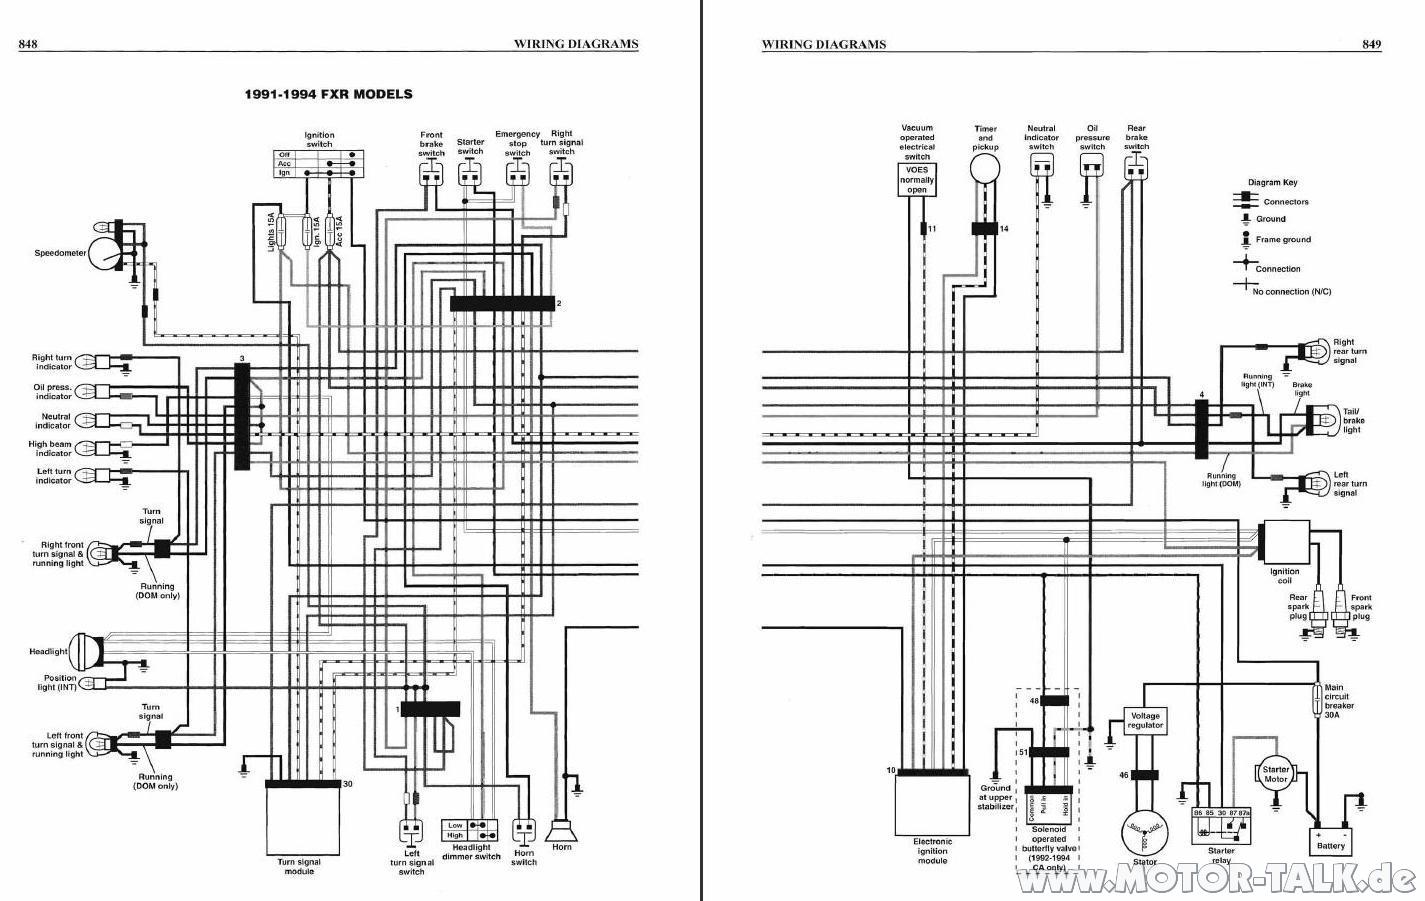 Crane Fireball Ignition Wiring Diagram For Harley Davidson